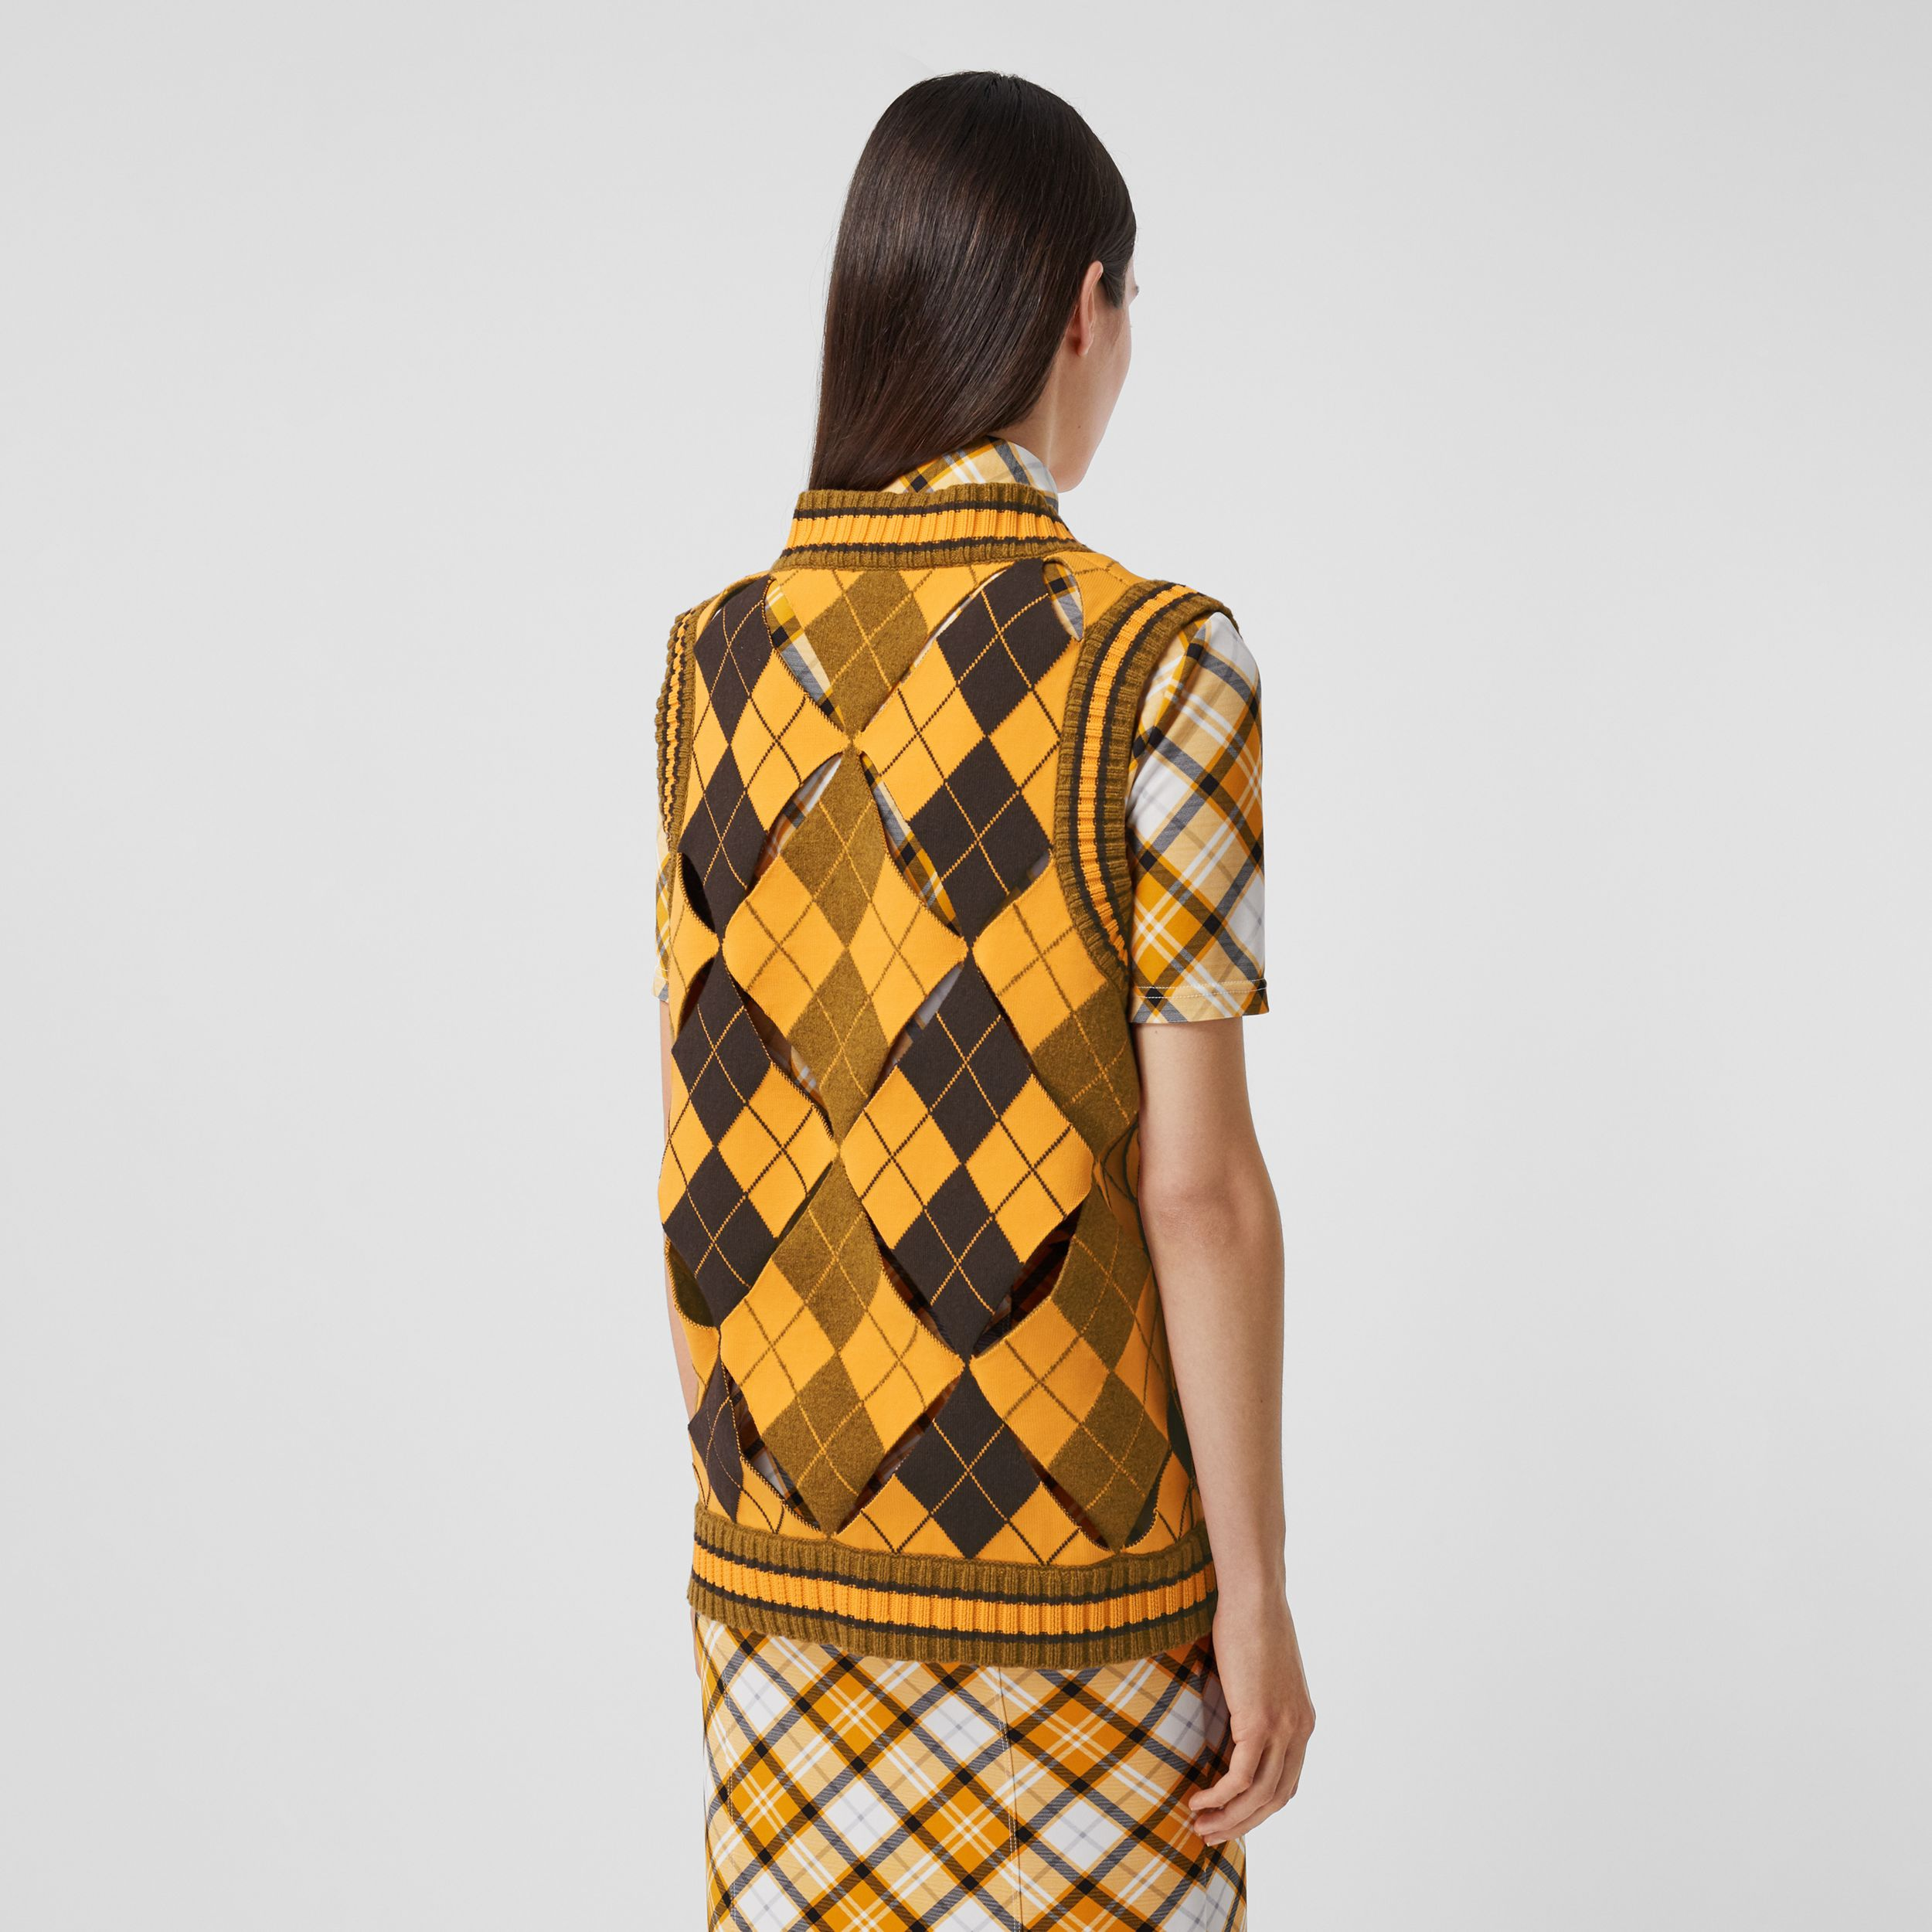 Cut-out Detail Argyle Technical Wool Jacquard Vest in Bright Orange - Women | Burberry - 3